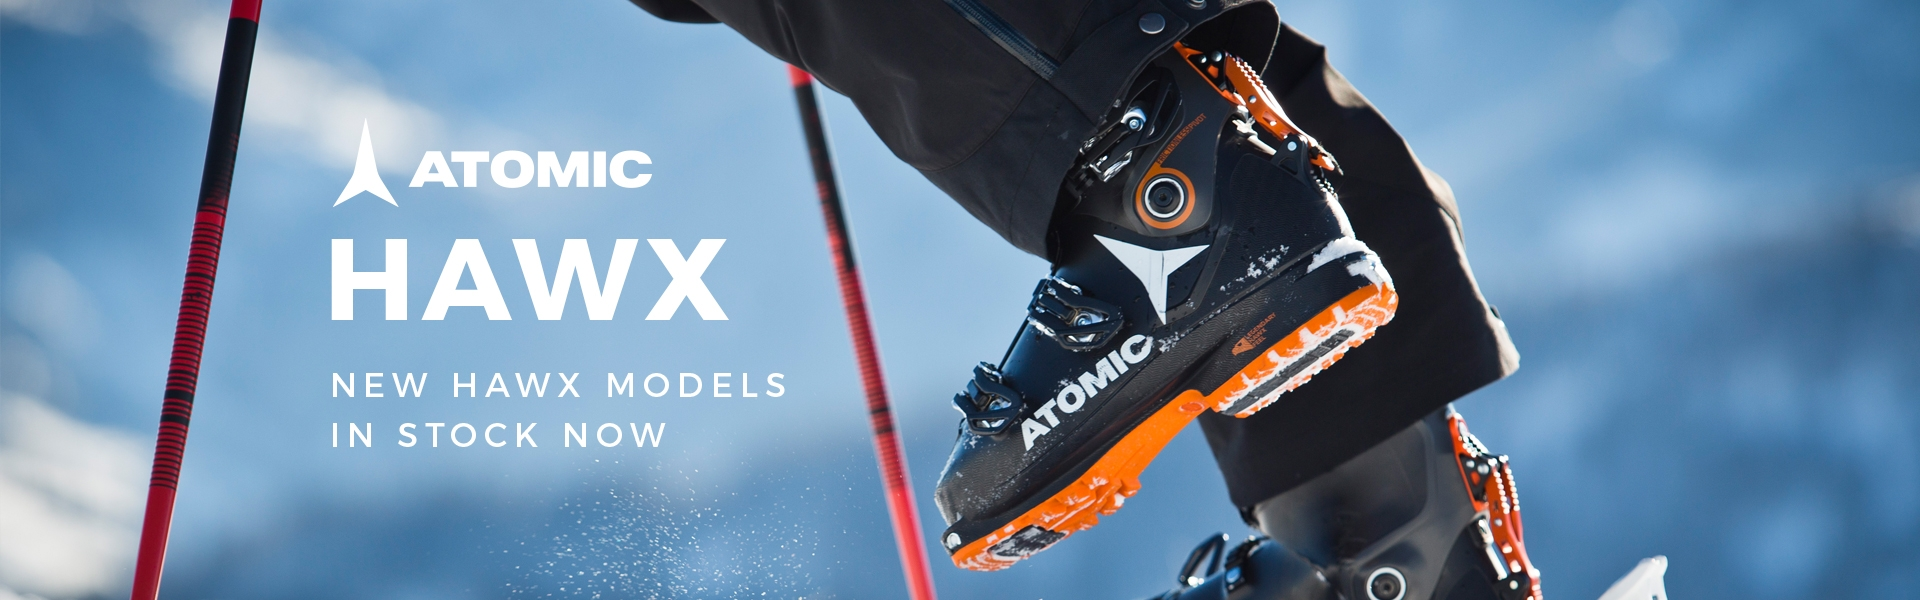 Shop Atomic Hawx Ski Boots